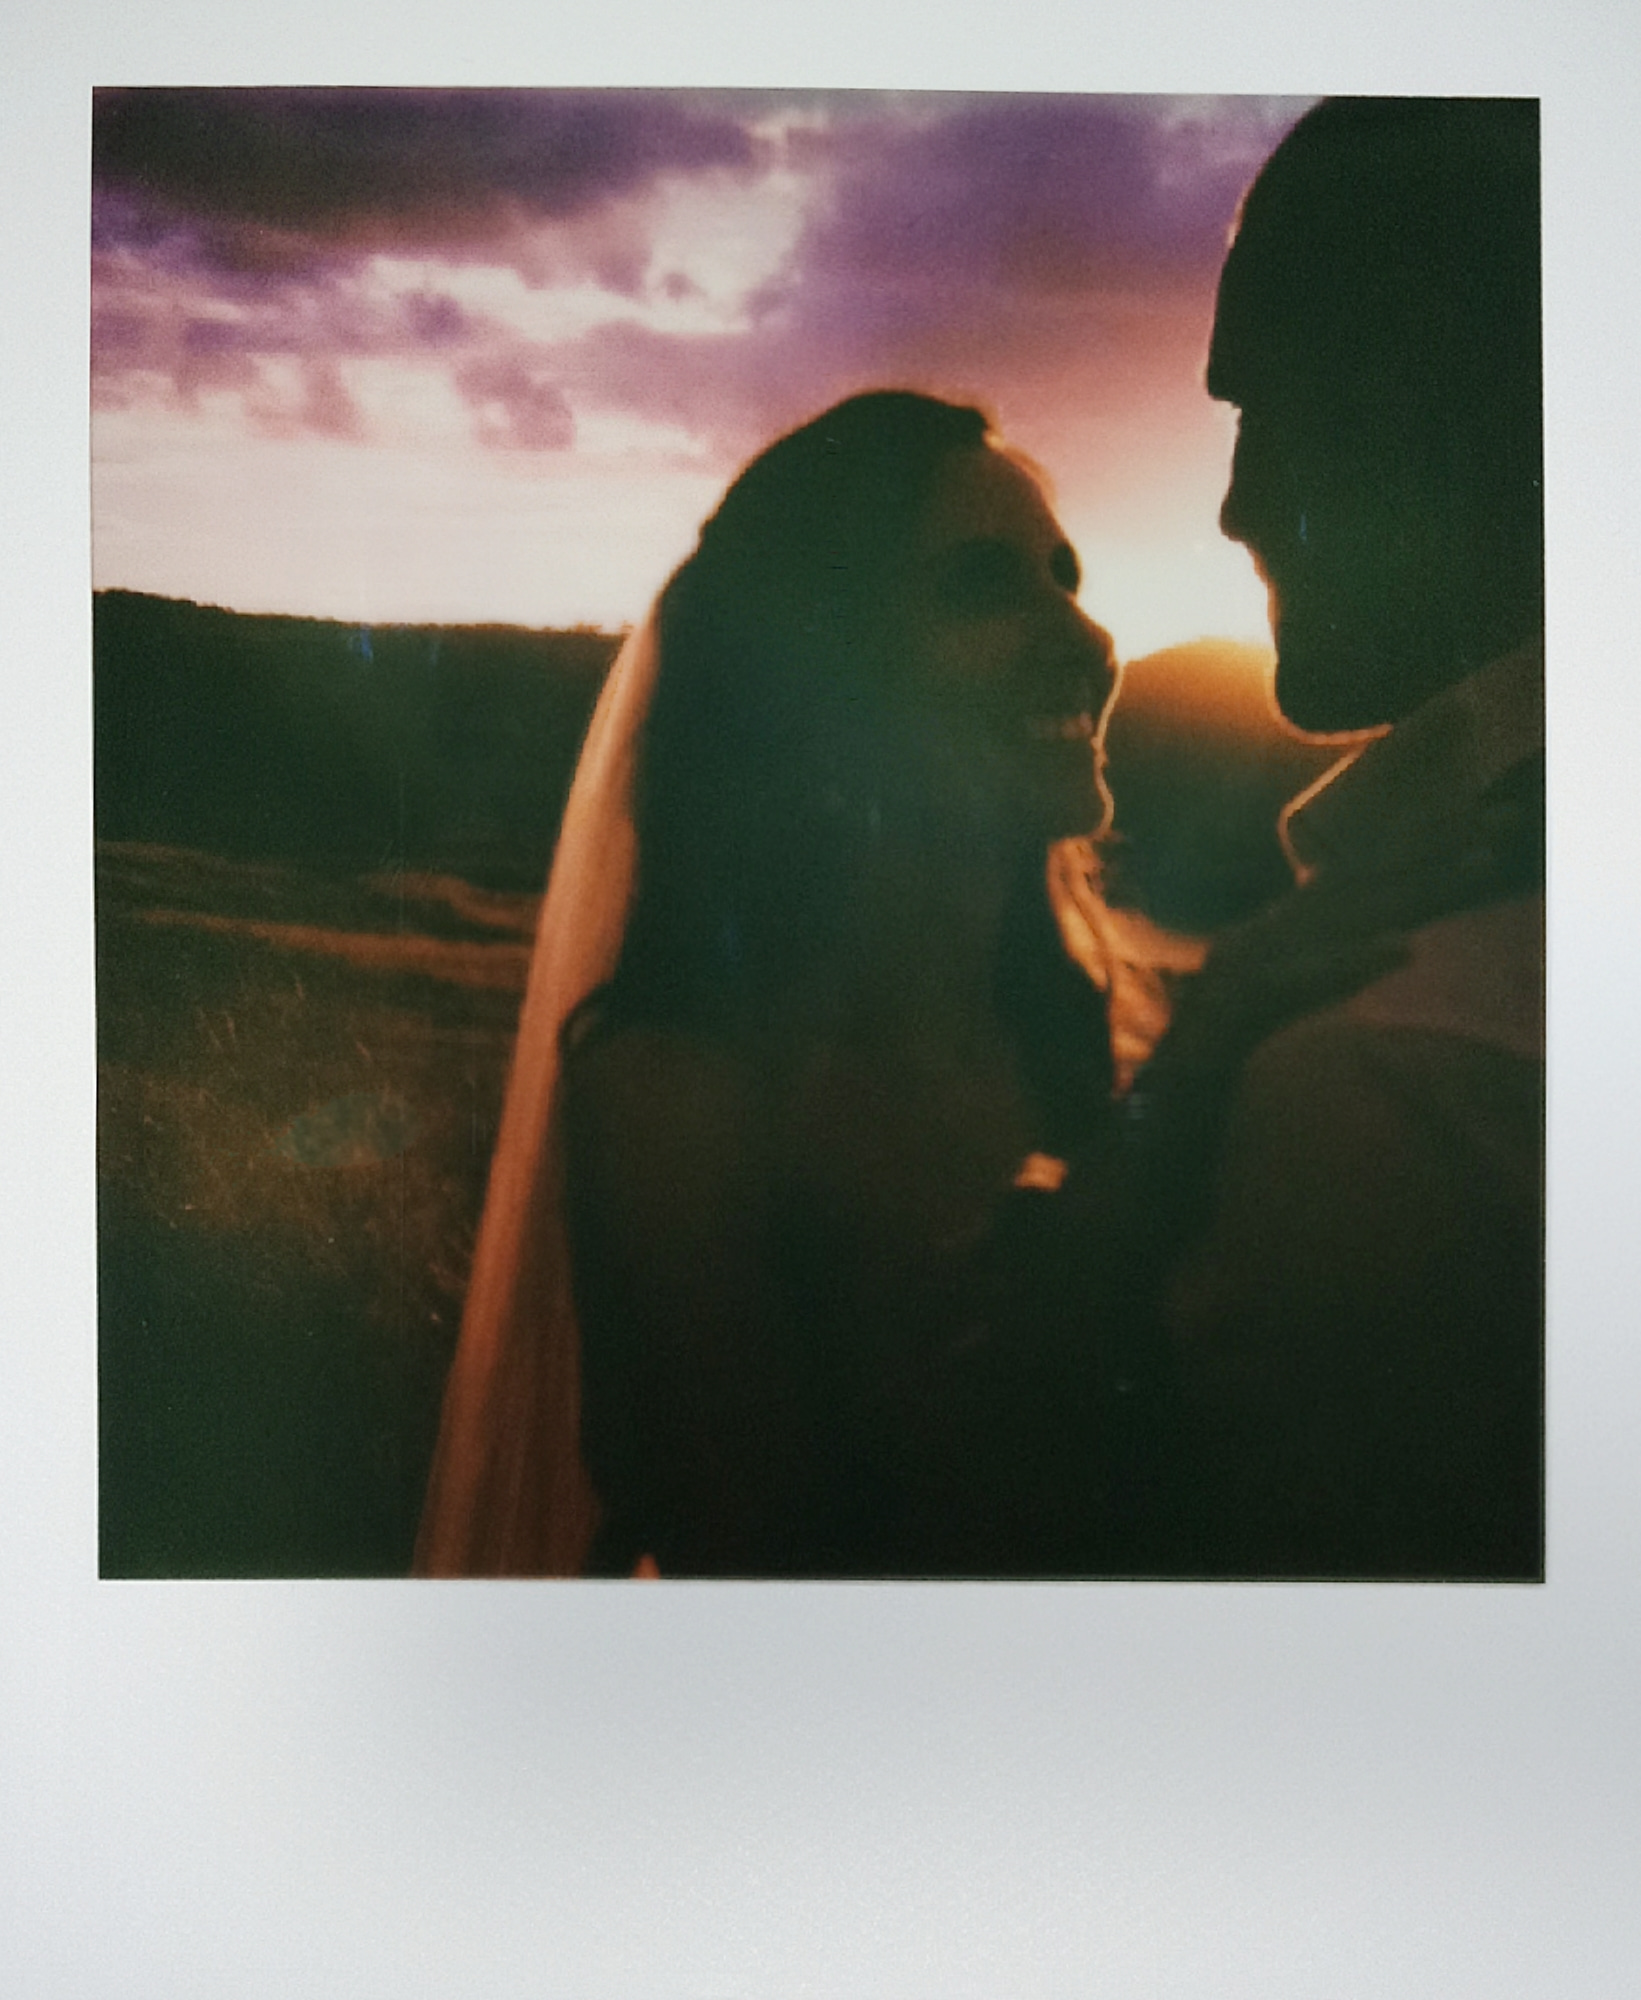 Polaroid frames of a bride and groom during sunset by Lake Lyell